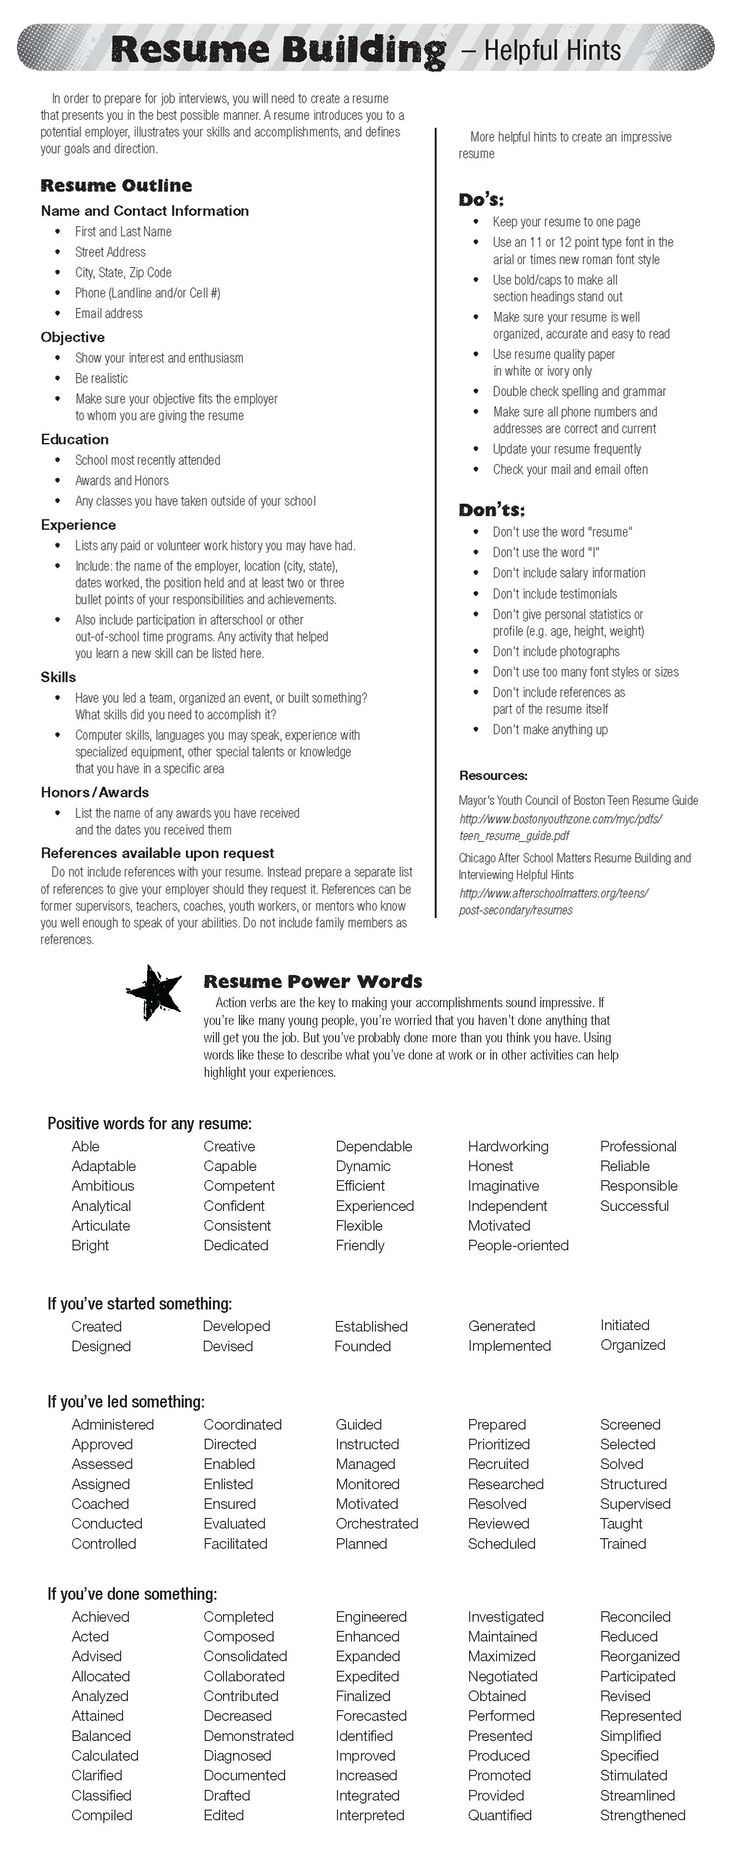 Opposenewapstandardsus  Winsome  Ideas About Resume On Pinterest  Cv Format Resume Cv And  With Marvelous  Ideas About Resume On Pinterest  Cv Format Resume Cv And Resume Templates With Captivating Read Write Think Resume Generator Also Intern Resume In Addition Customer Service Job Description For Resume And Format Of A Resume As Well As Objectives In Resumes Additionally Recent College Graduate Resume From Pinterestcom With Opposenewapstandardsus  Marvelous  Ideas About Resume On Pinterest  Cv Format Resume Cv And  With Captivating  Ideas About Resume On Pinterest  Cv Format Resume Cv And Resume Templates And Winsome Read Write Think Resume Generator Also Intern Resume In Addition Customer Service Job Description For Resume From Pinterestcom